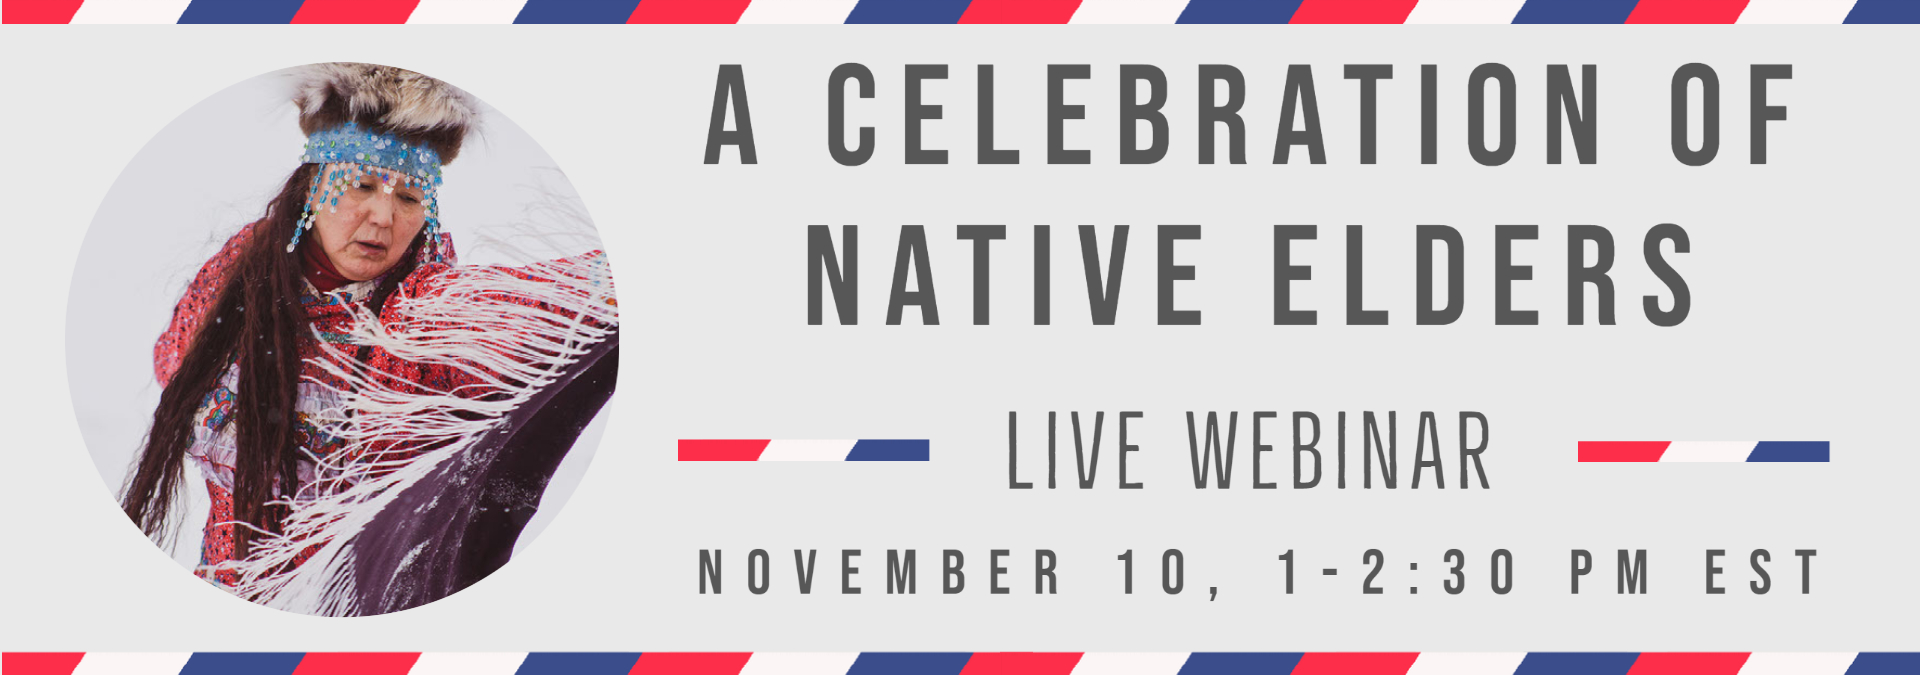 A Celebration of Native Elders: Live Webinar